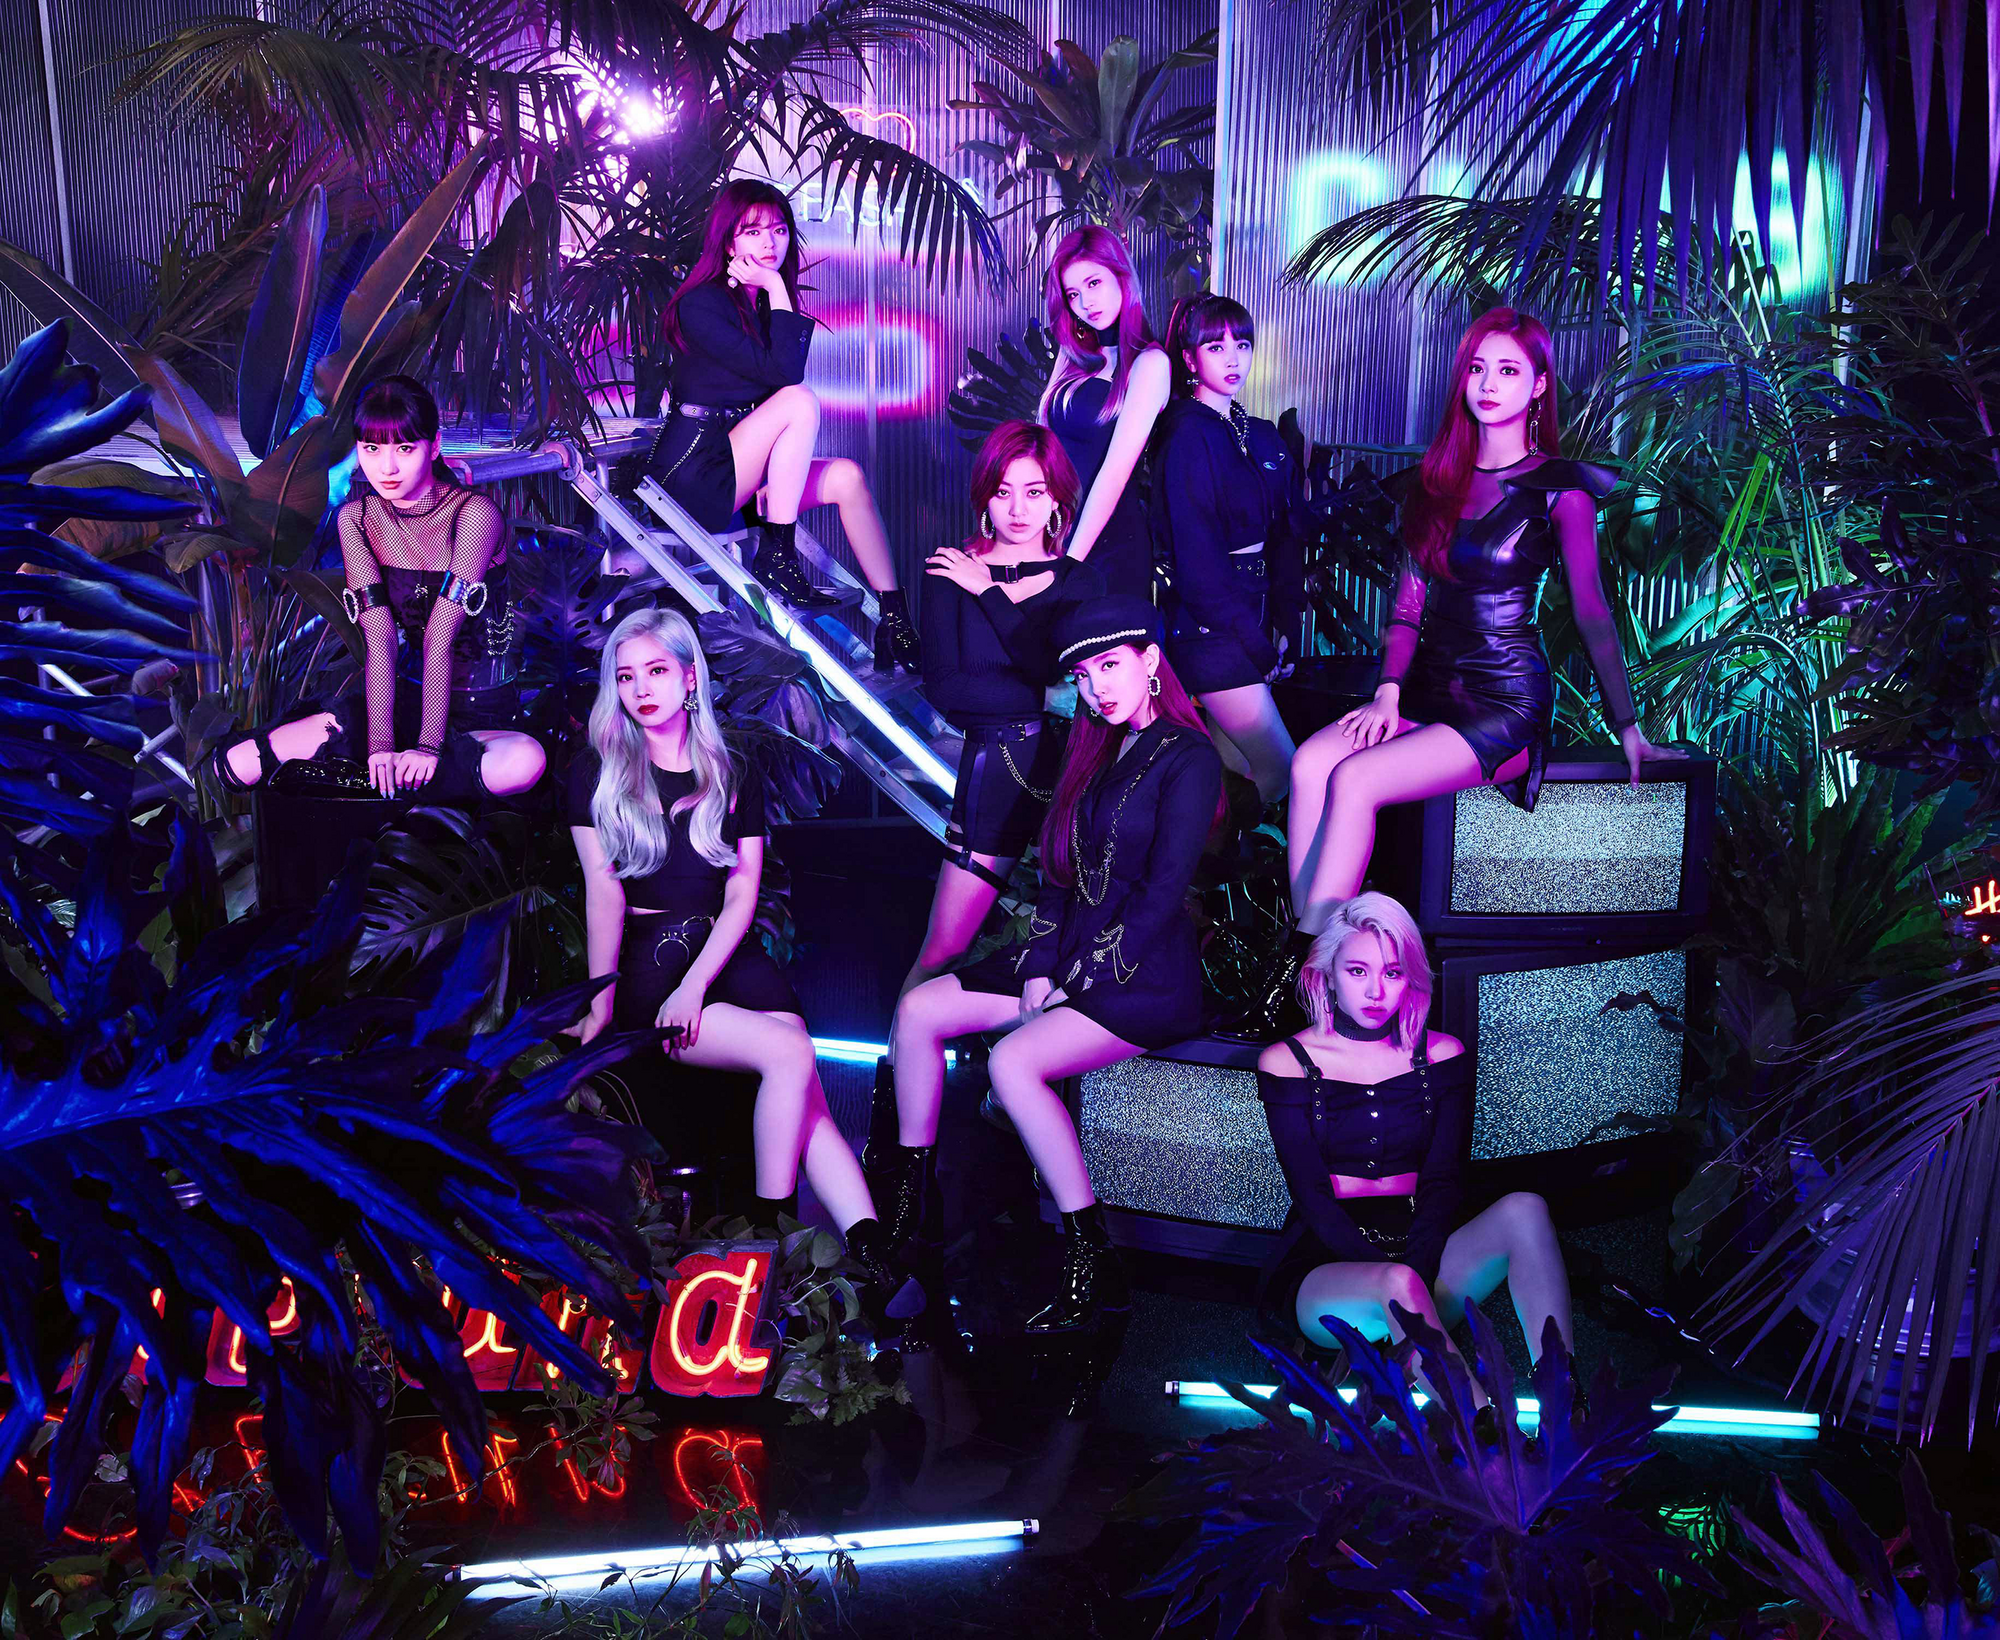 TWICE | Kpop Wiki | FANDOM powered by Wikia